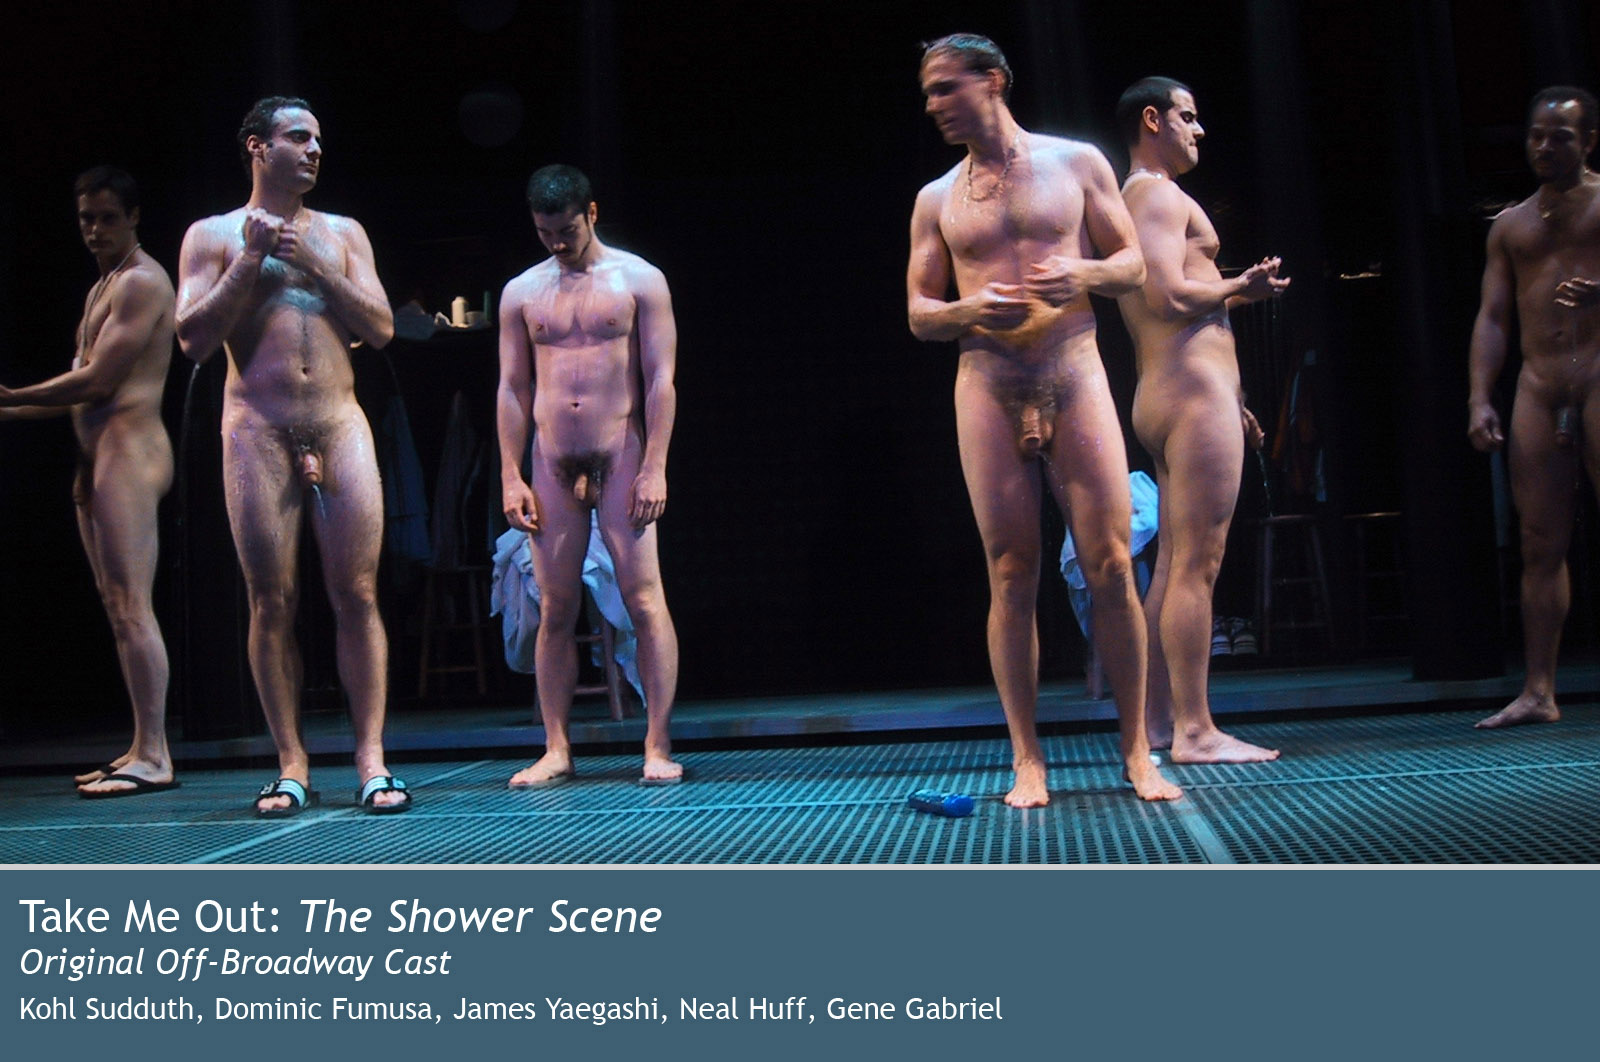 Male nudity on stage